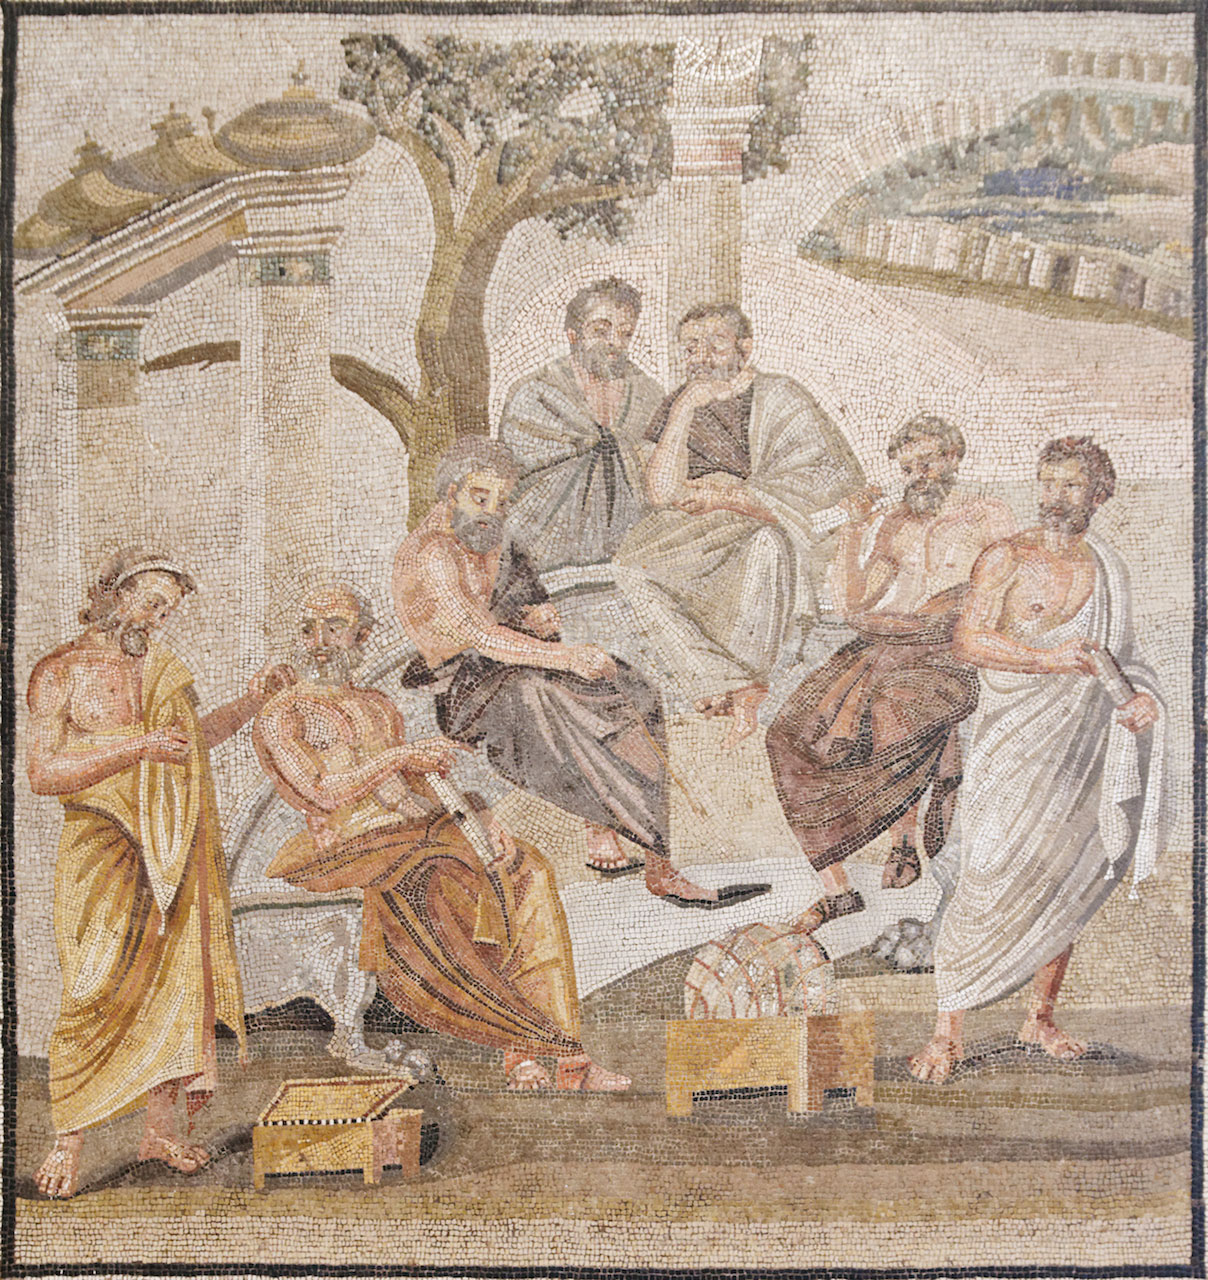 Roman mosaic: Plato's Academy. From the House of T. Siminius Stephanus, Pompeii, ca. 1st century BCE; now in the Museo Nazionale Archeologico, Naples.